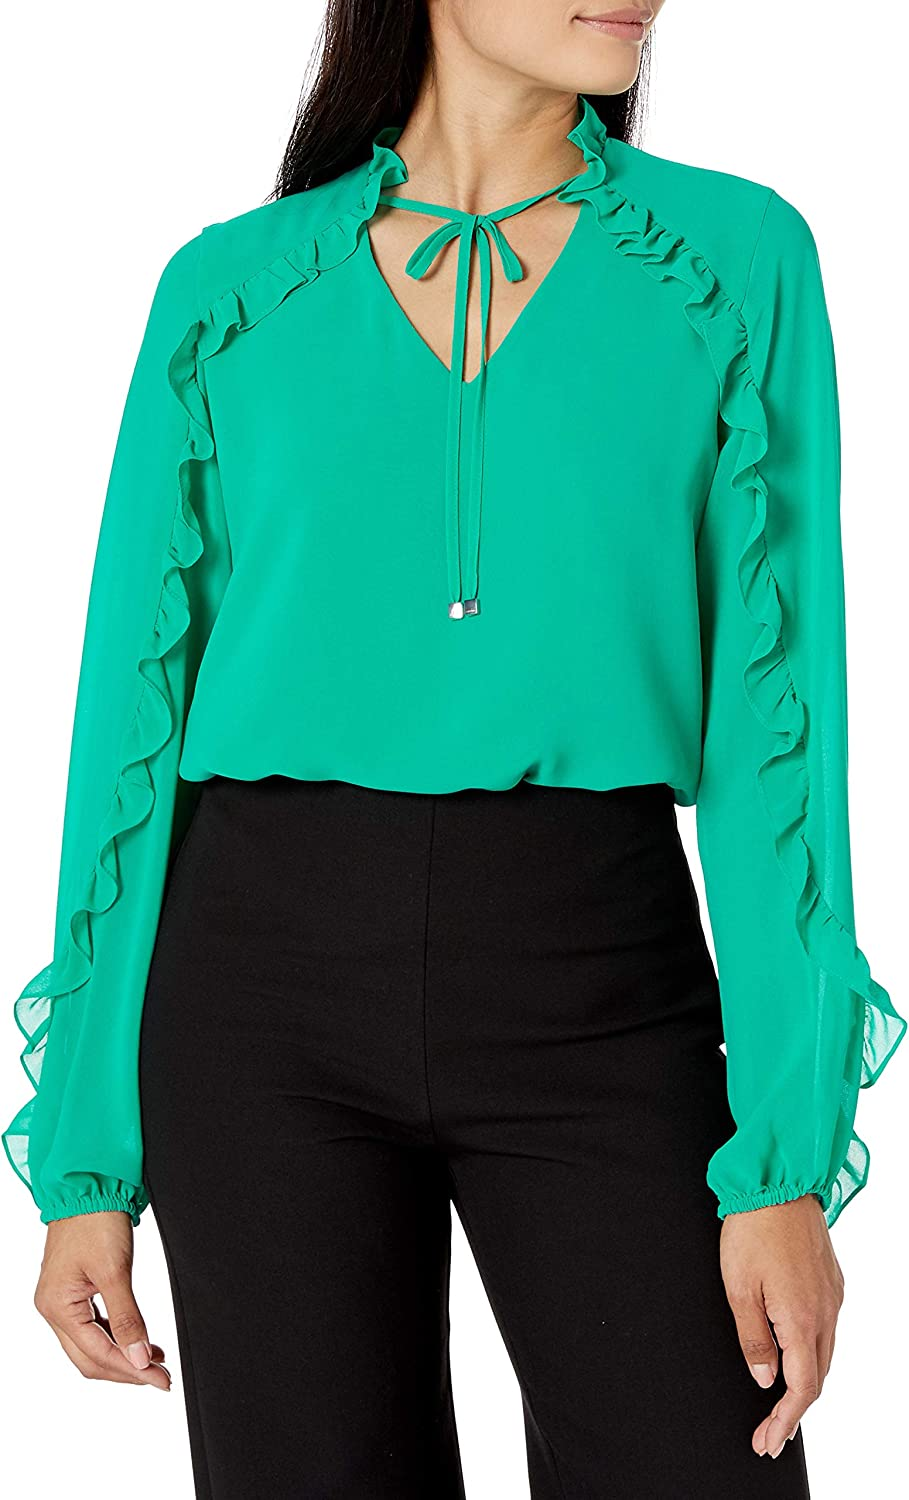 New product!! Calvin Klein New arrival Women's Top Long Sleeve